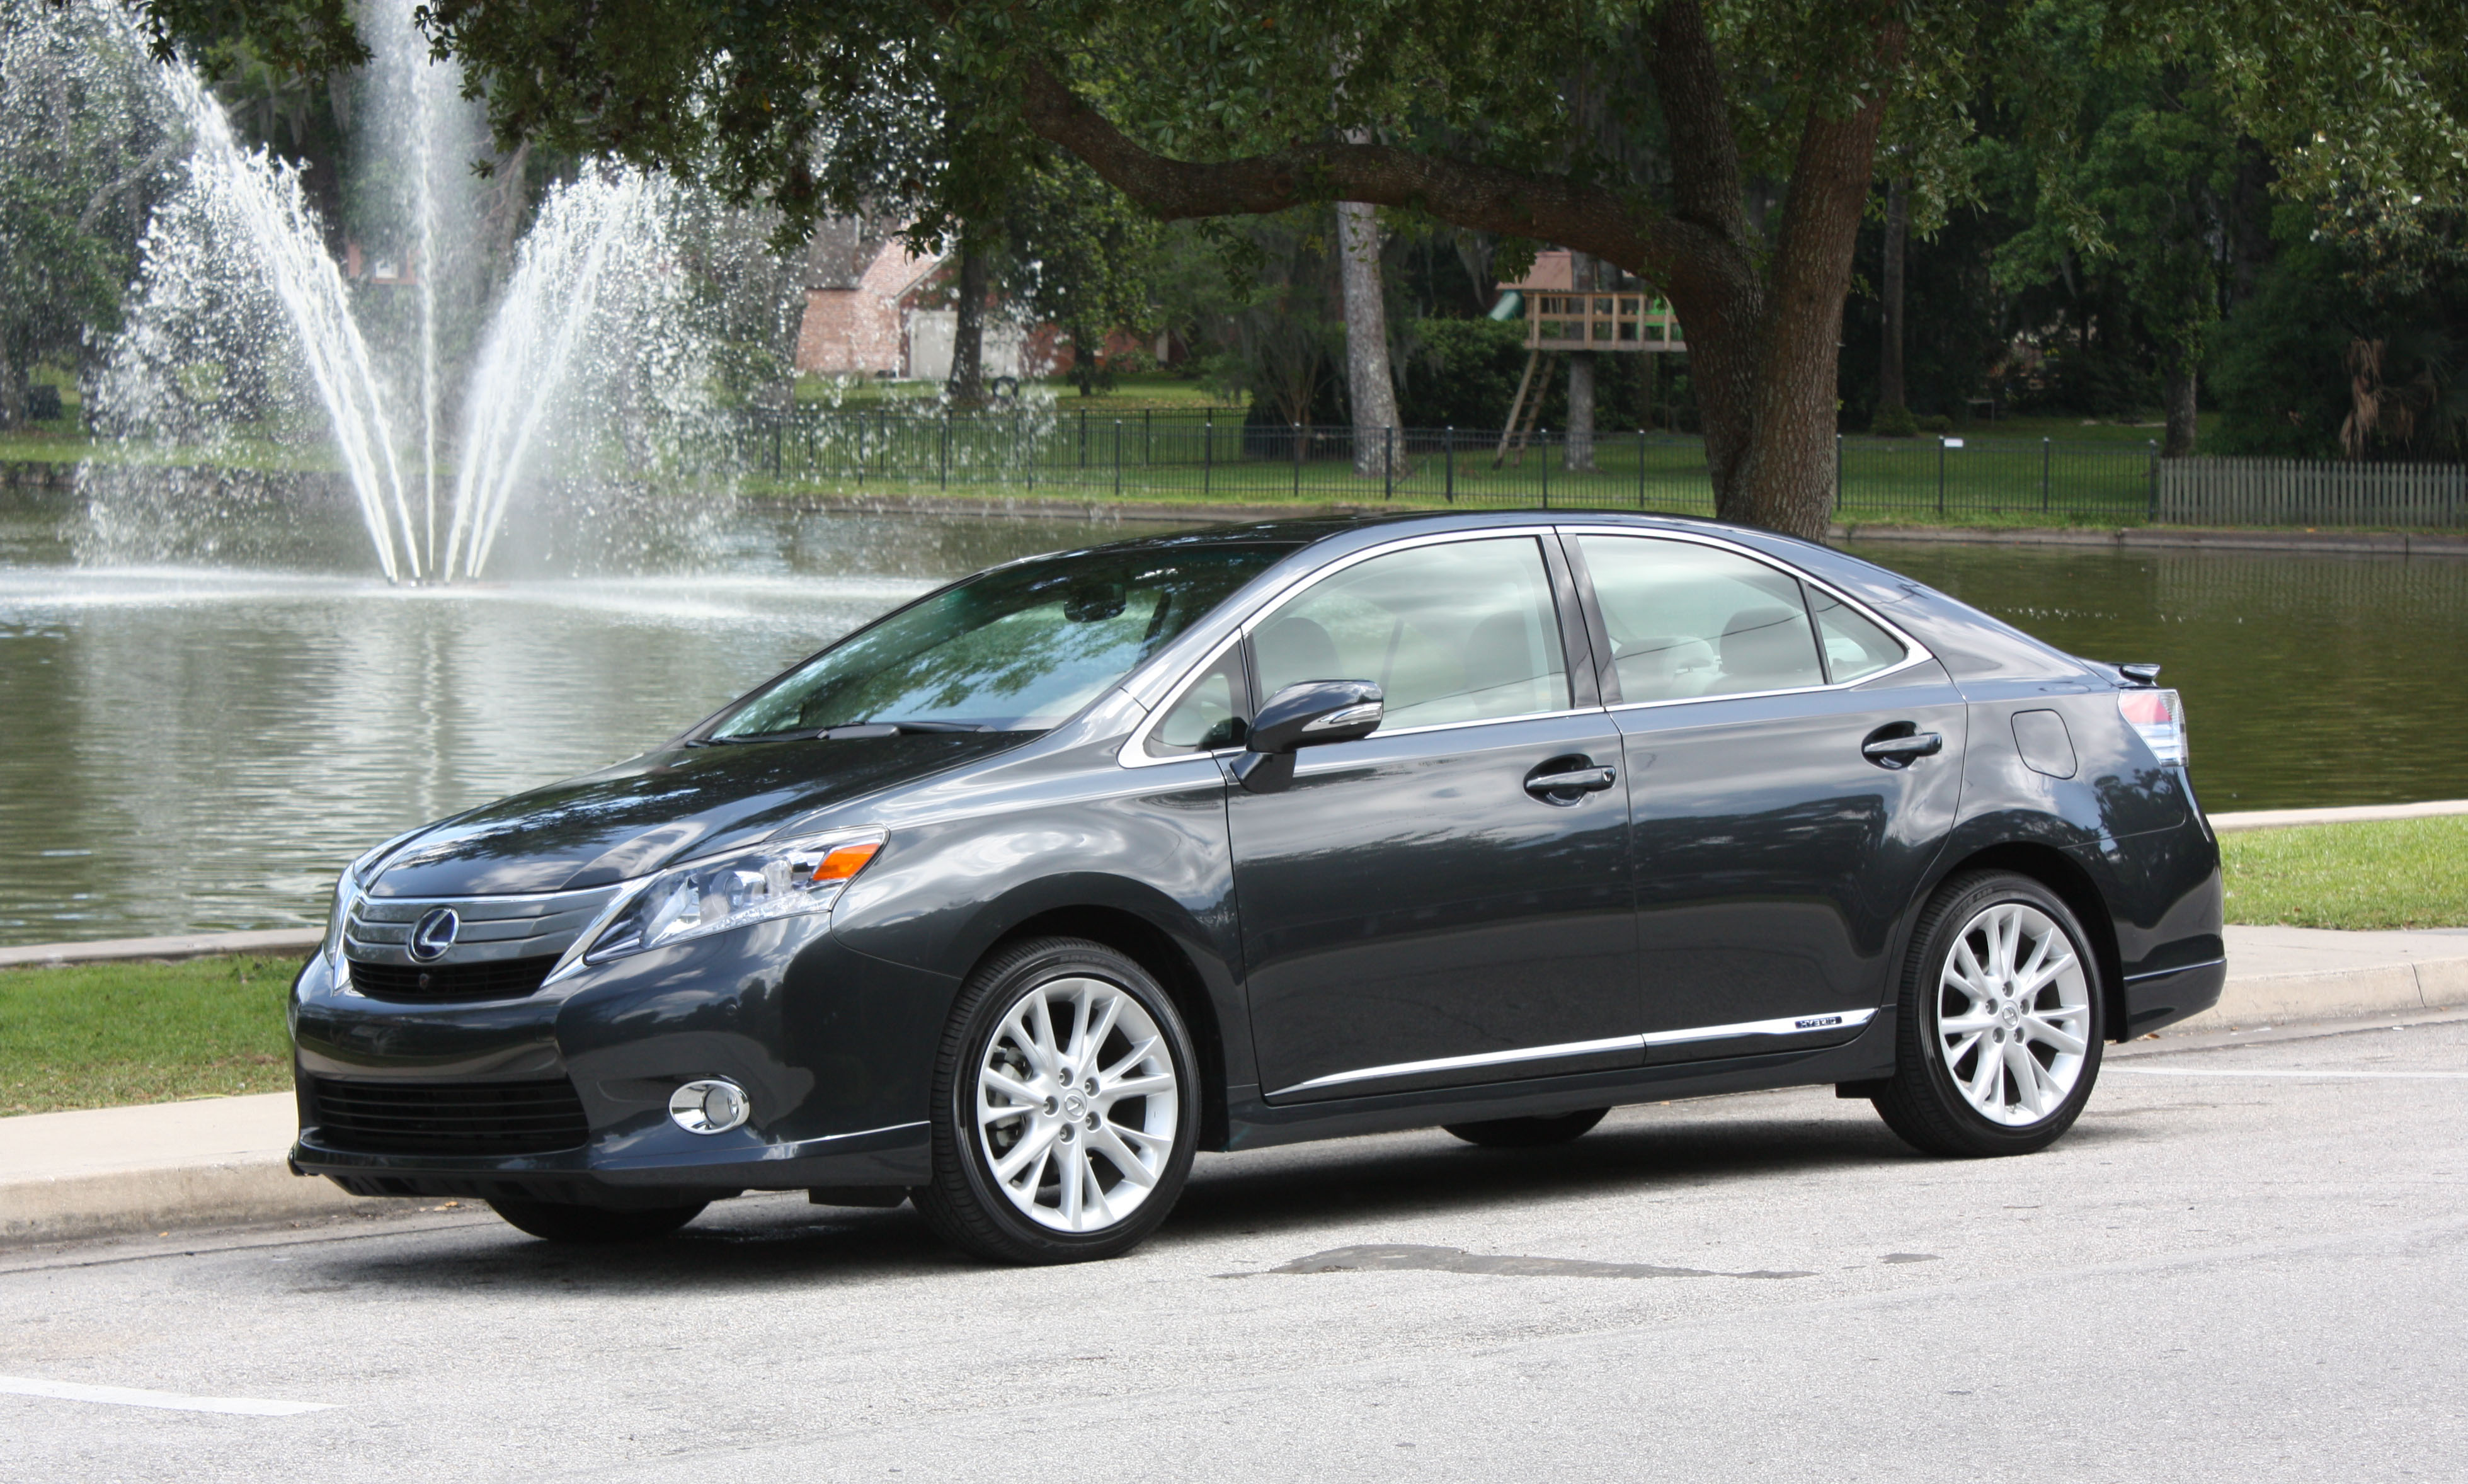 Lexus Hs   pictures, information and specs - Auto-Database.com